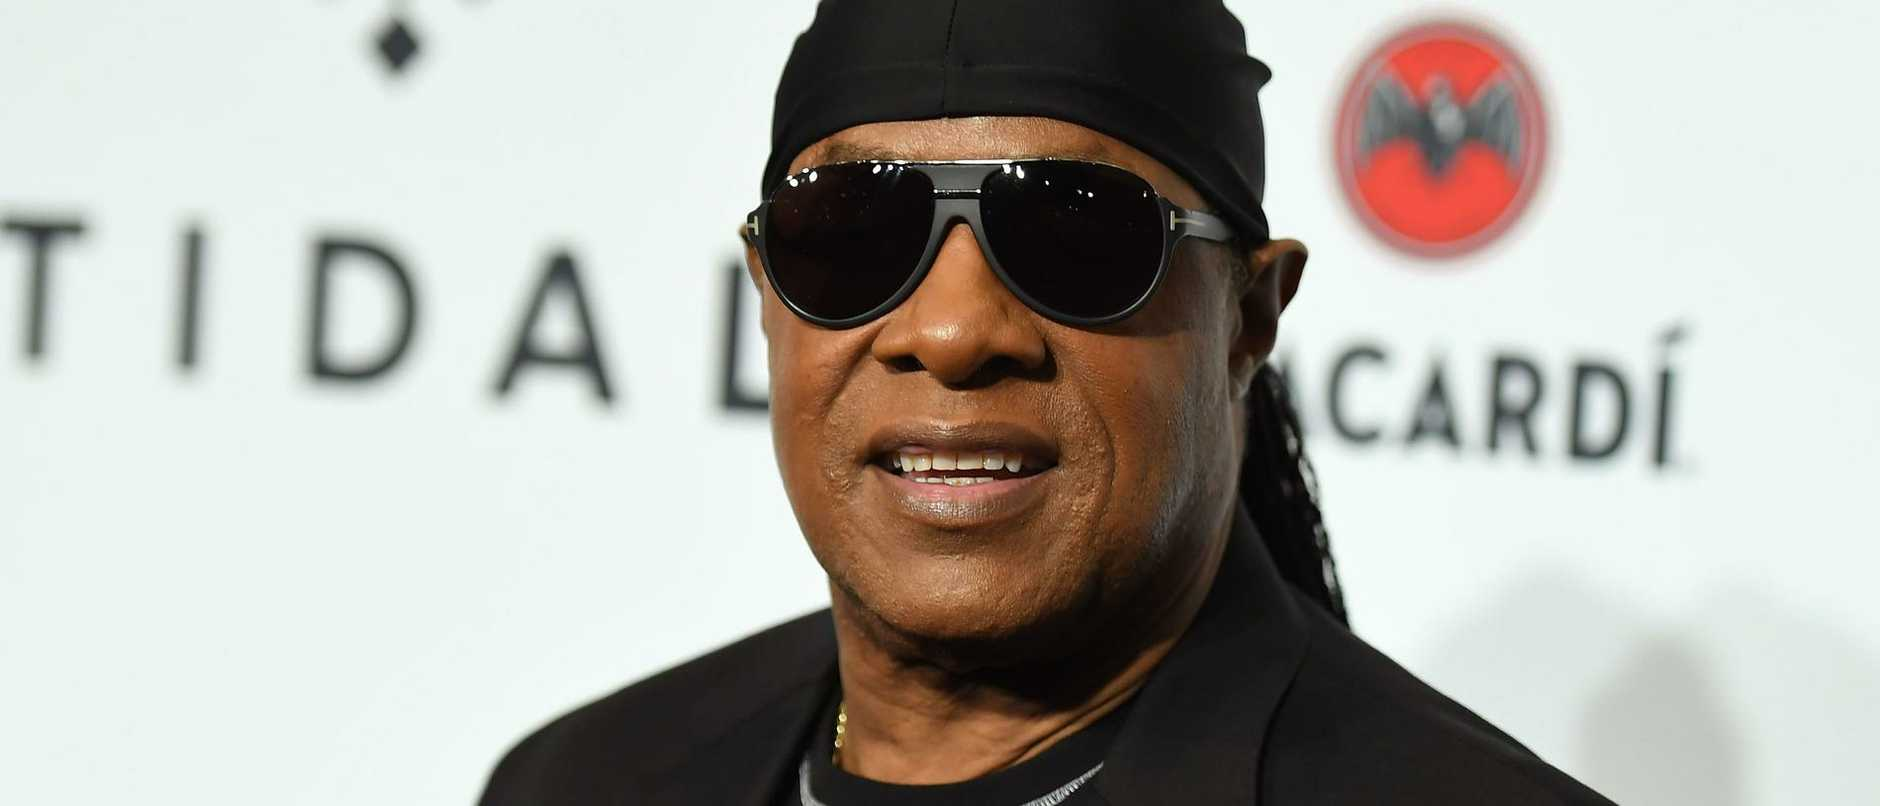 Conspiracy theorists have long speculated on Stevie Wonder's blindness.